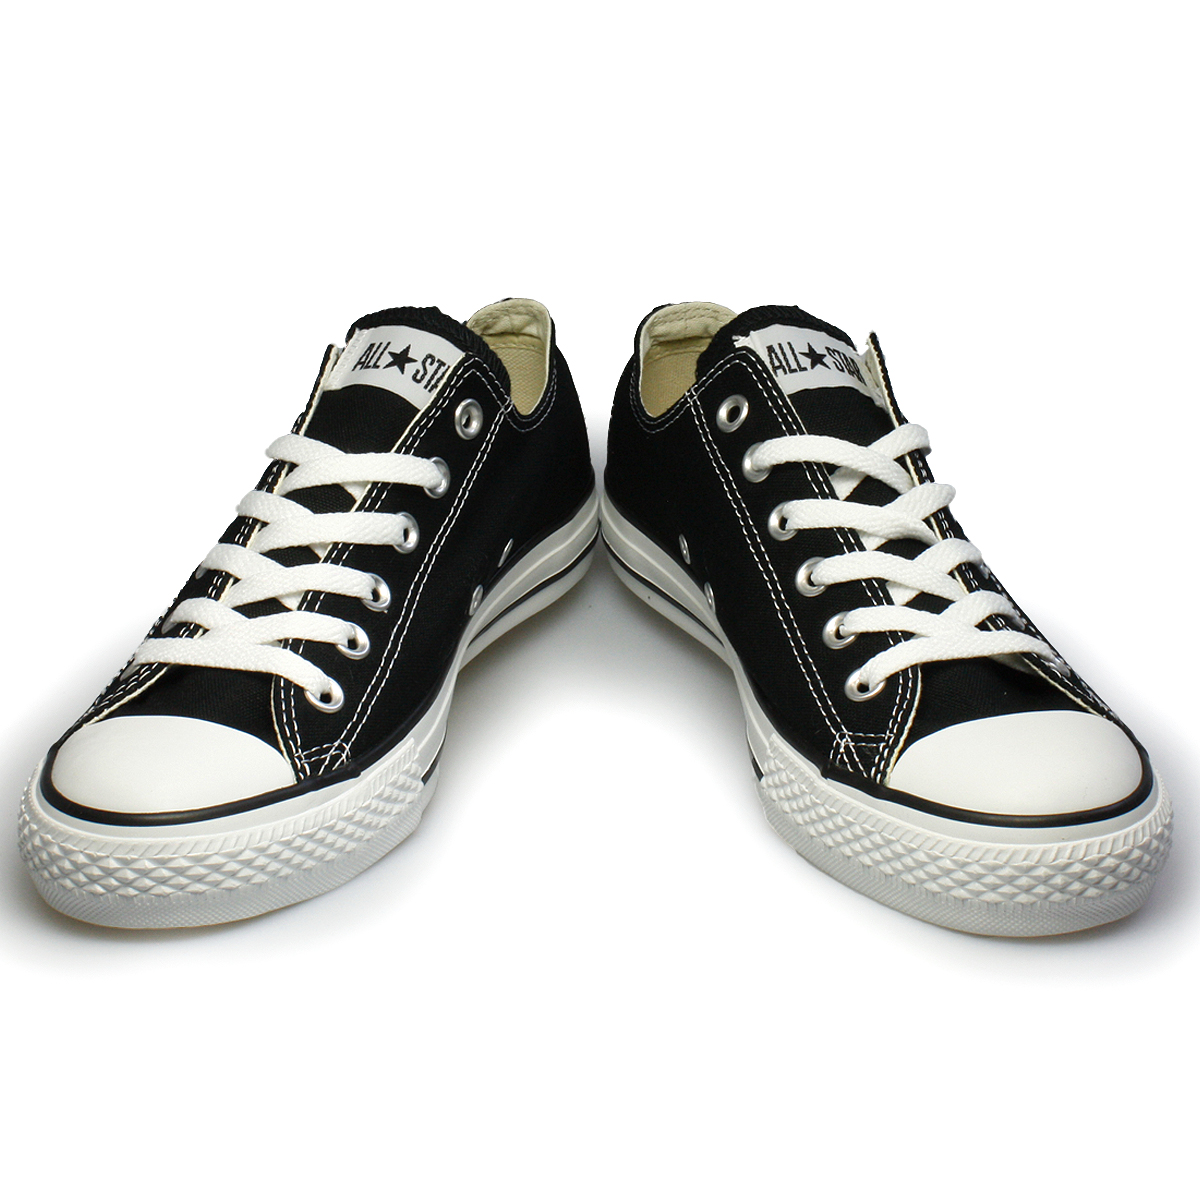 converse all star black canvas trainers sneakers shoes mens womens size 4 12. Black Bedroom Furniture Sets. Home Design Ideas